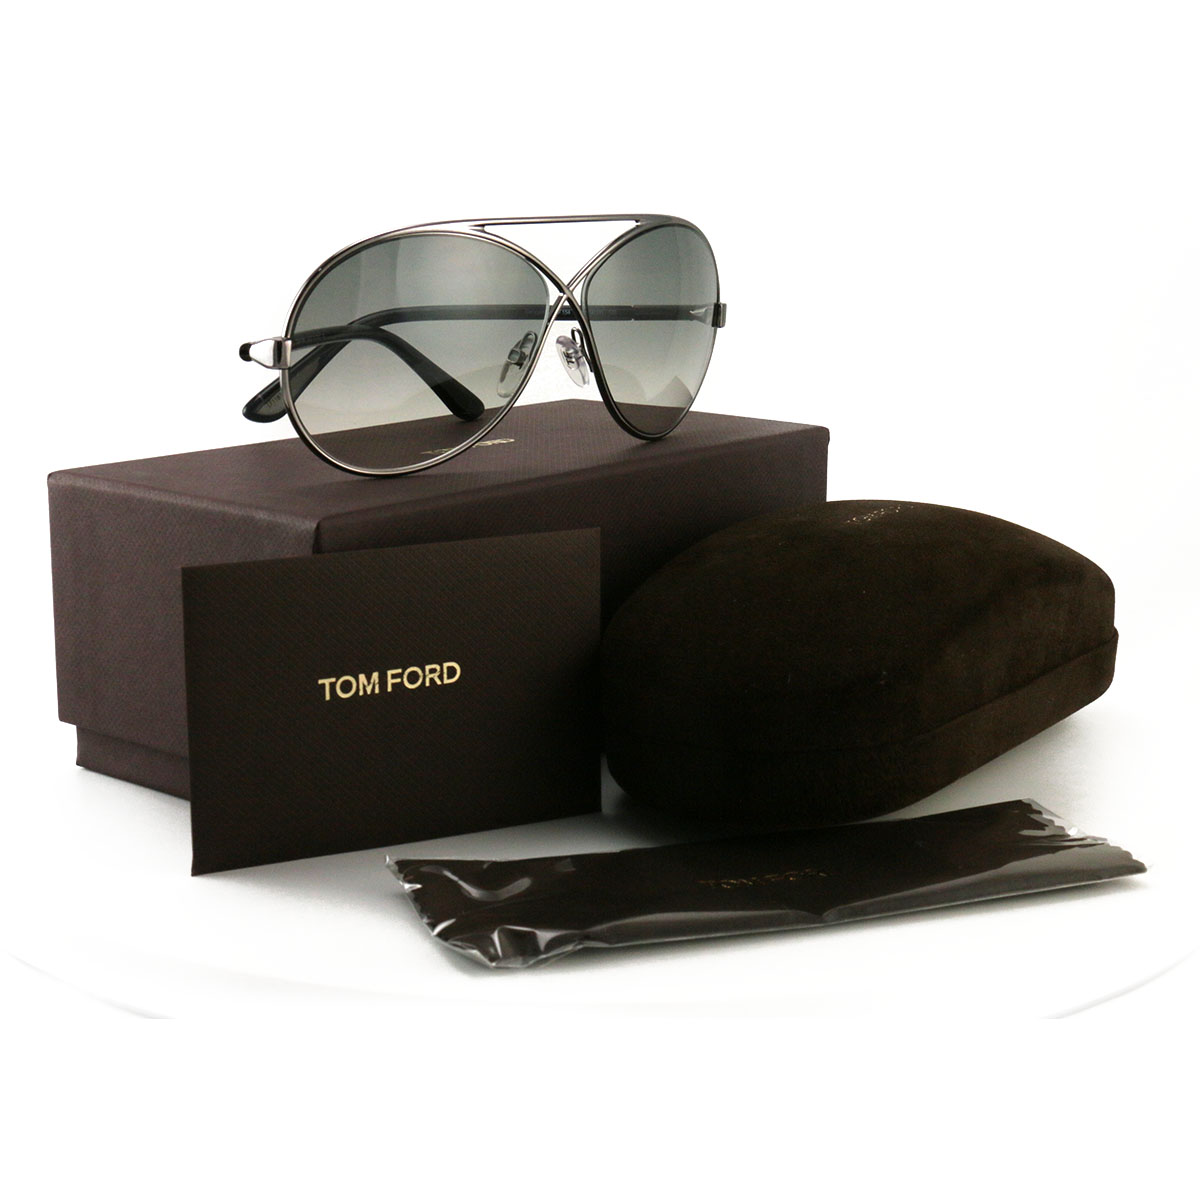 Tom Ford Women's Sunglasses FT0154/TF0154 12B Silver 64 11 125